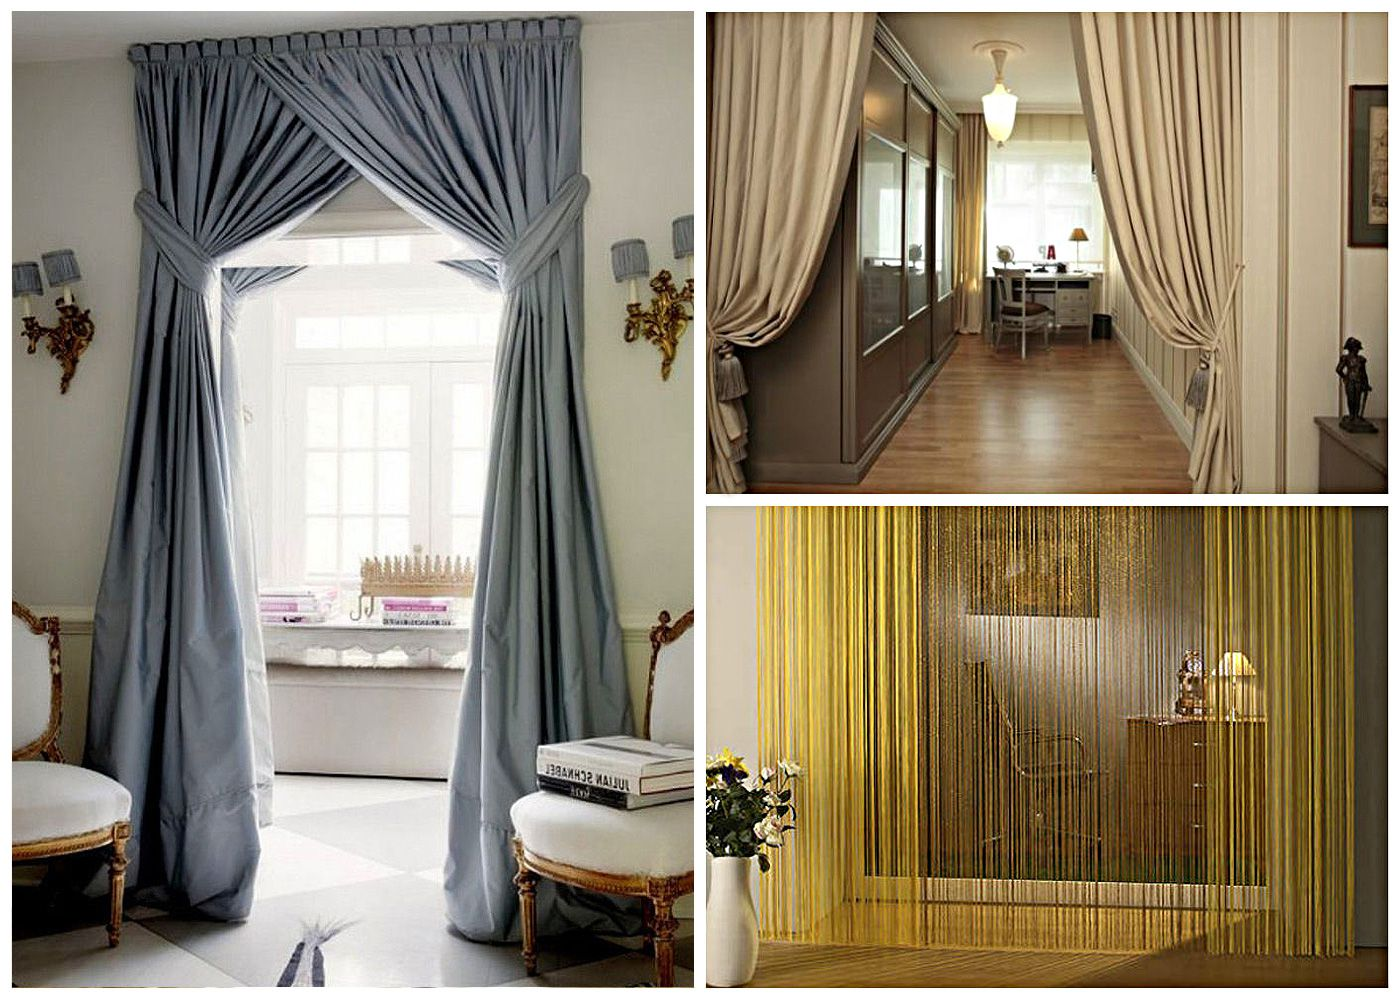 decorative curtains in doorways by your